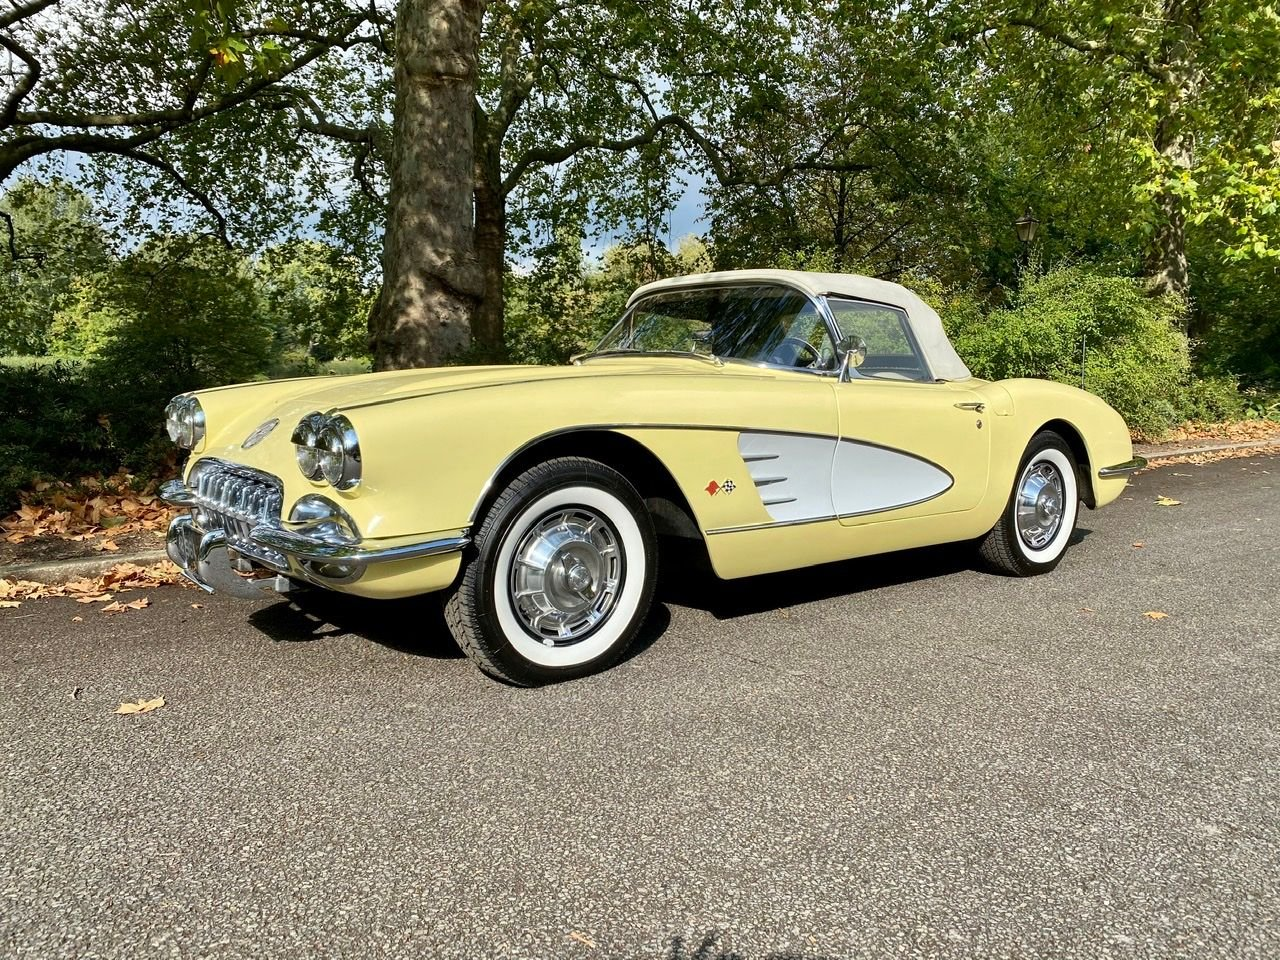 1959 chevrolet corvette c1 283 cu in v8